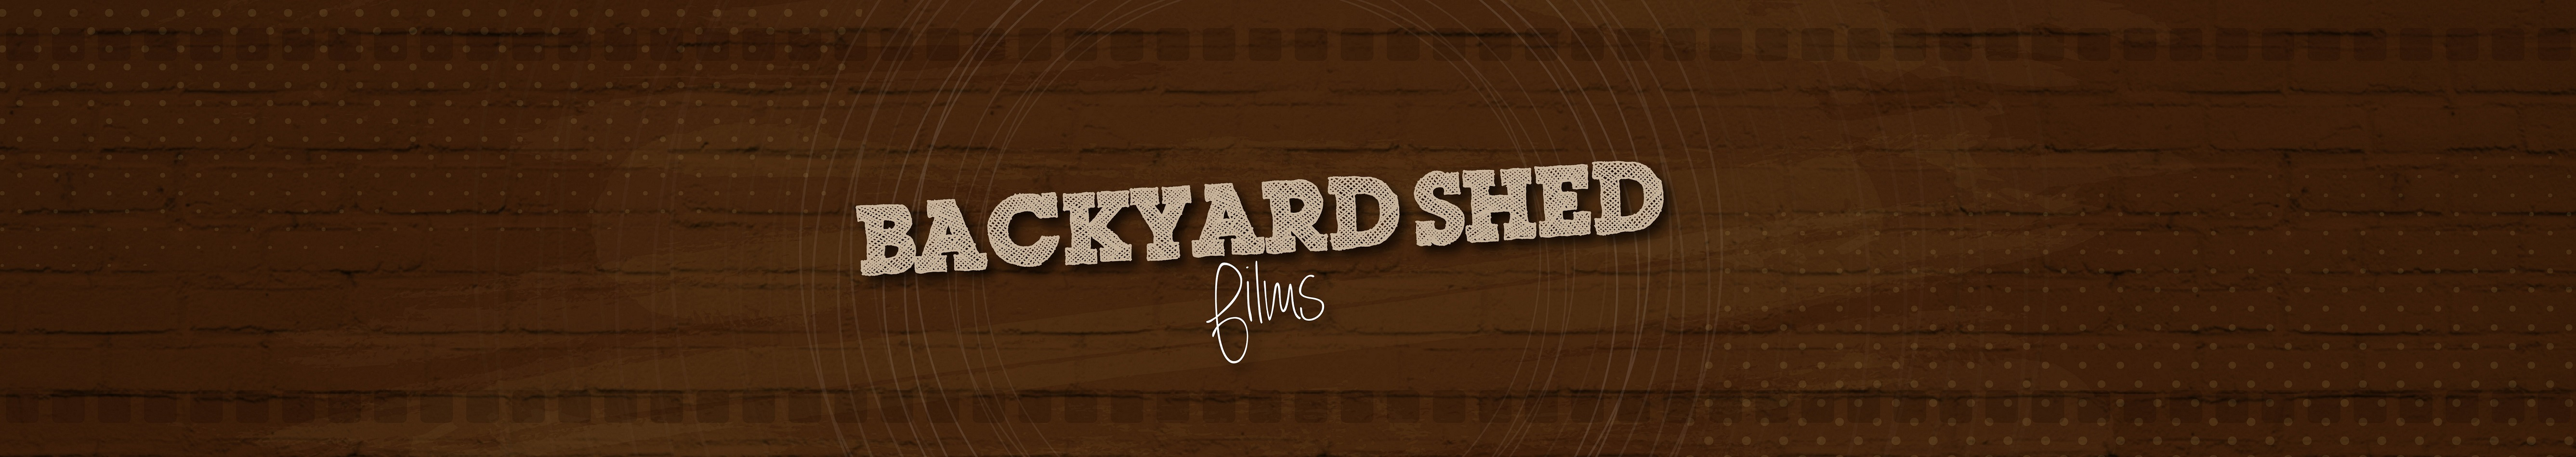 Youtube | Backyard Shed Films